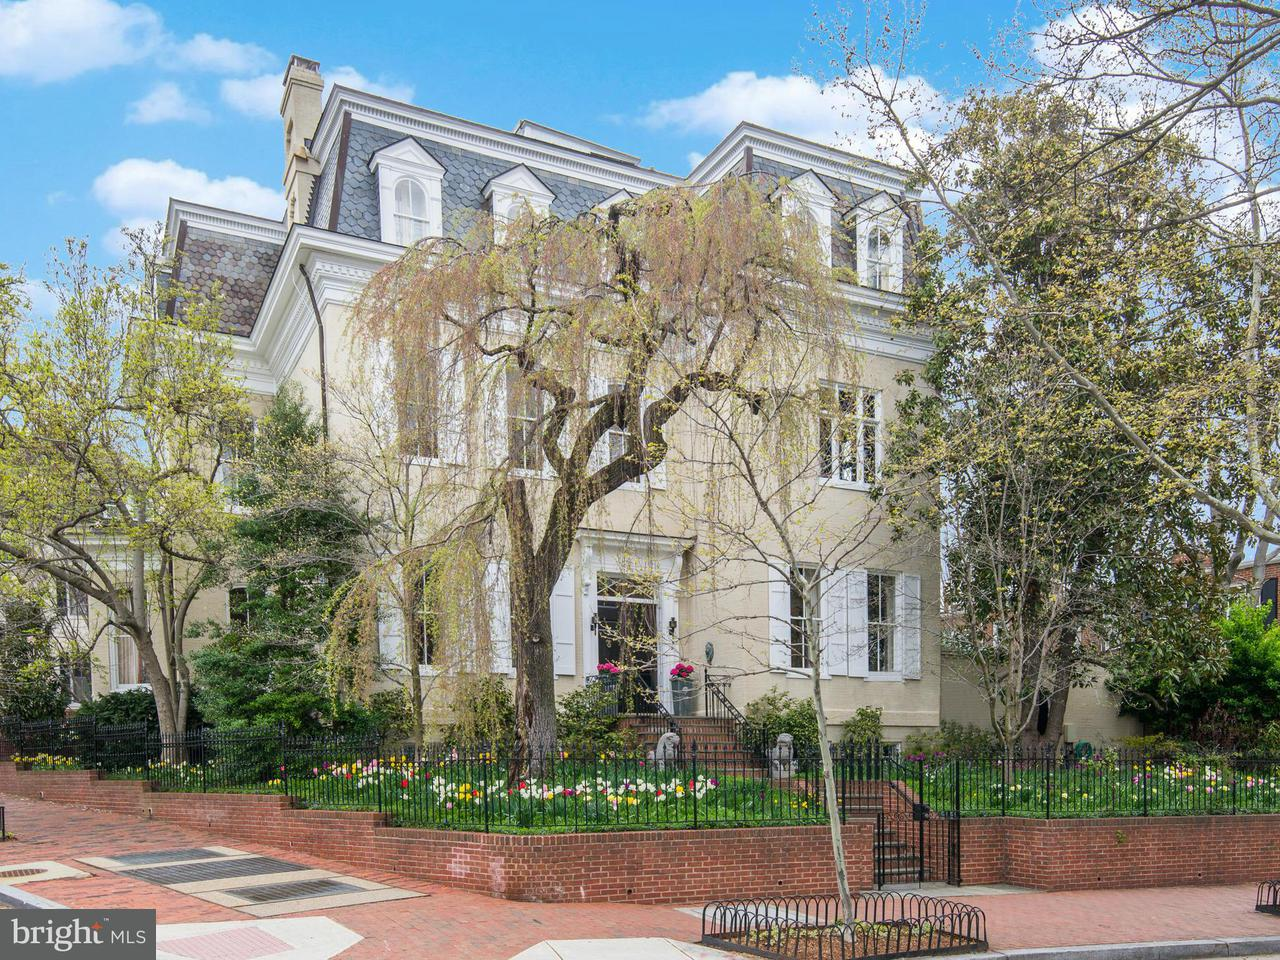 Single Family Home for Sale at 3053 P ST NW 3053 P ST NW Washington, District Of Columbia 20007 United States